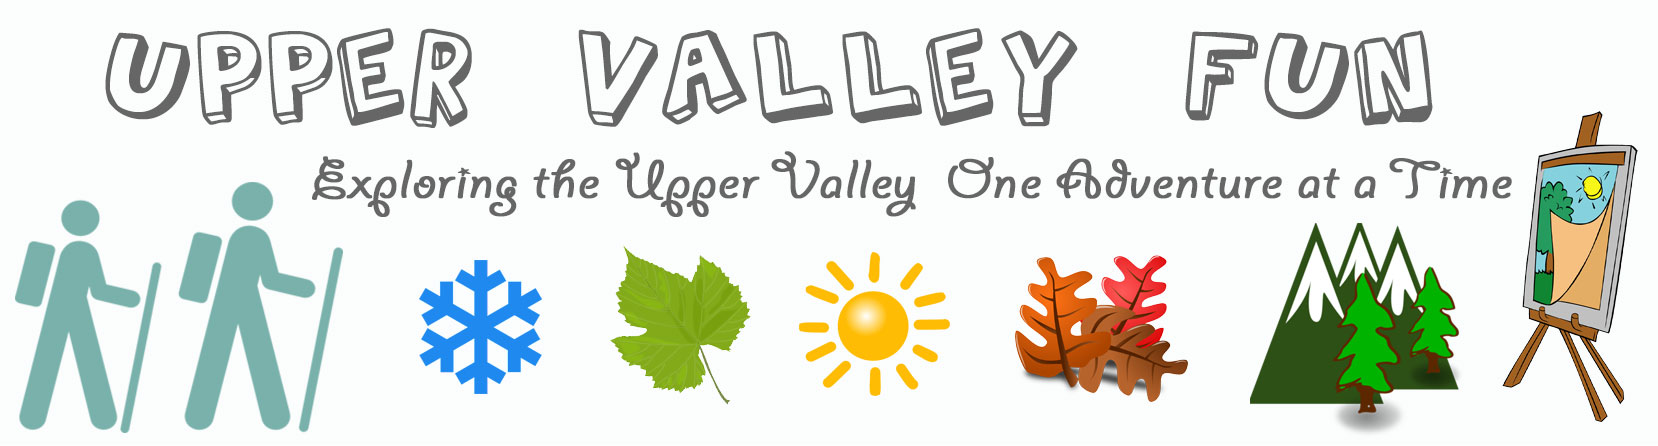 Help Upper Valley Fun Serve You Better